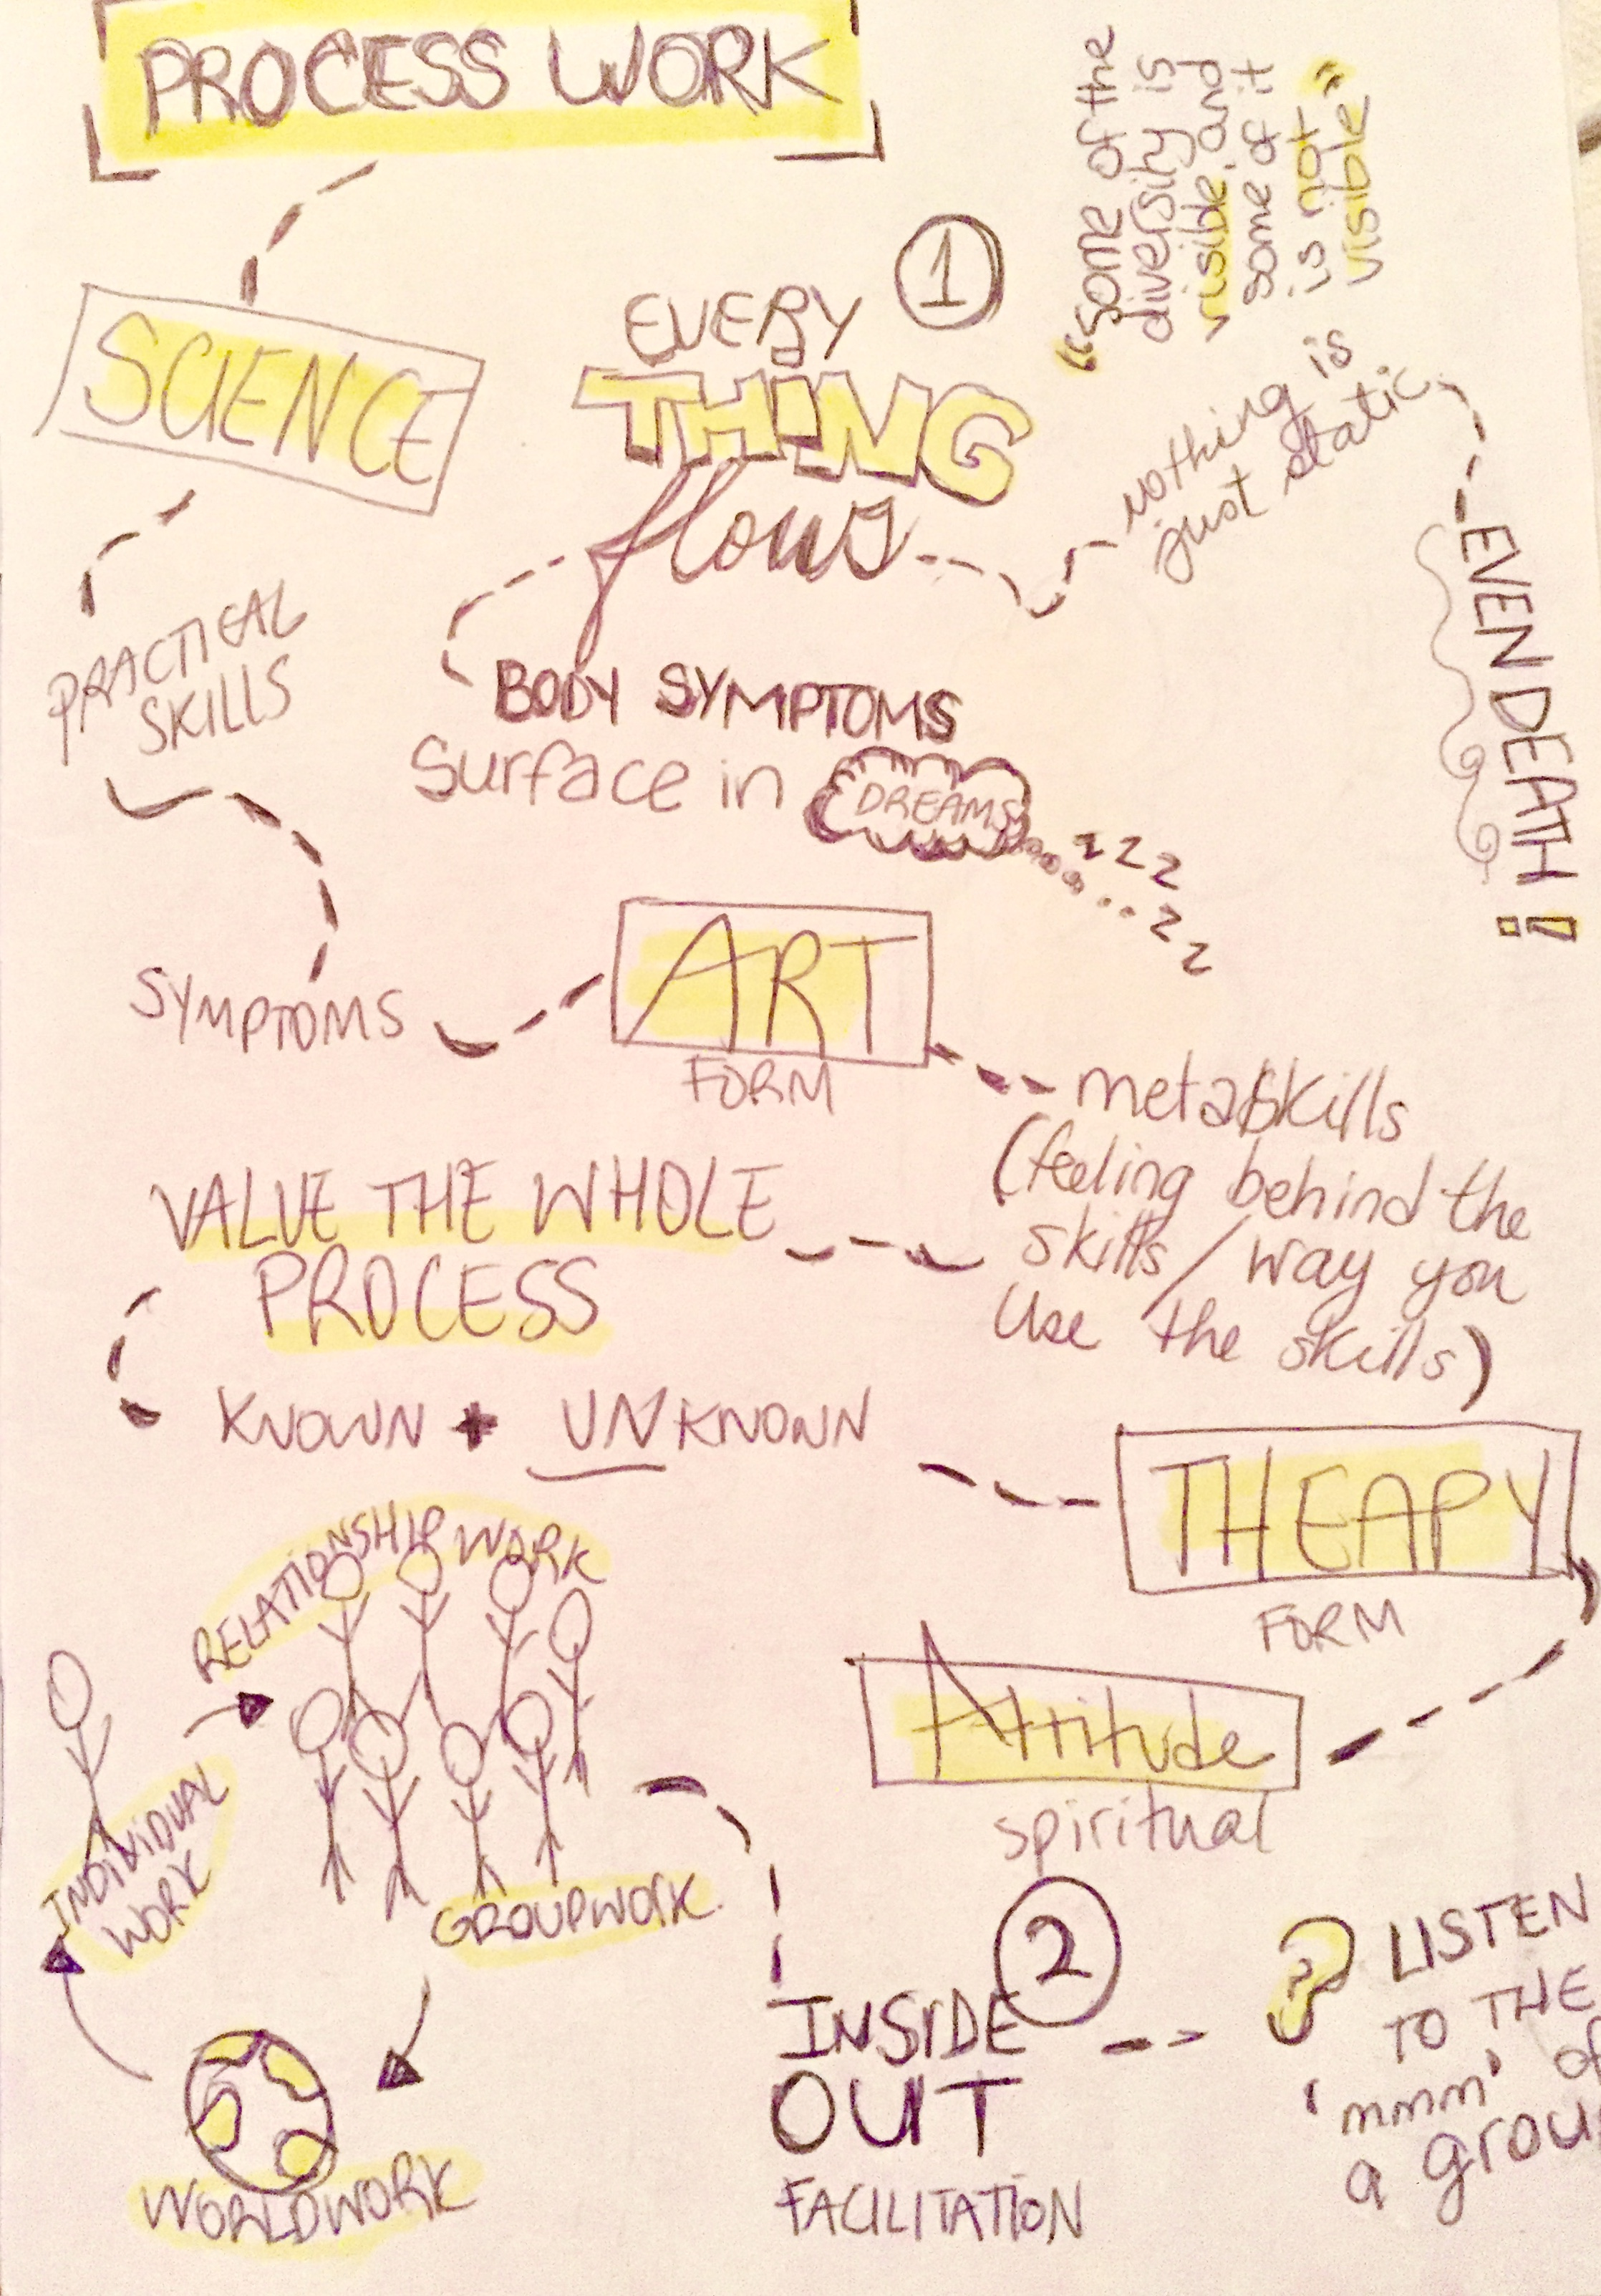 A visual harvest I put together in my notes, of what captures the essence of Processwork, from early introduction classes (this by no means is a comprehensive capture).